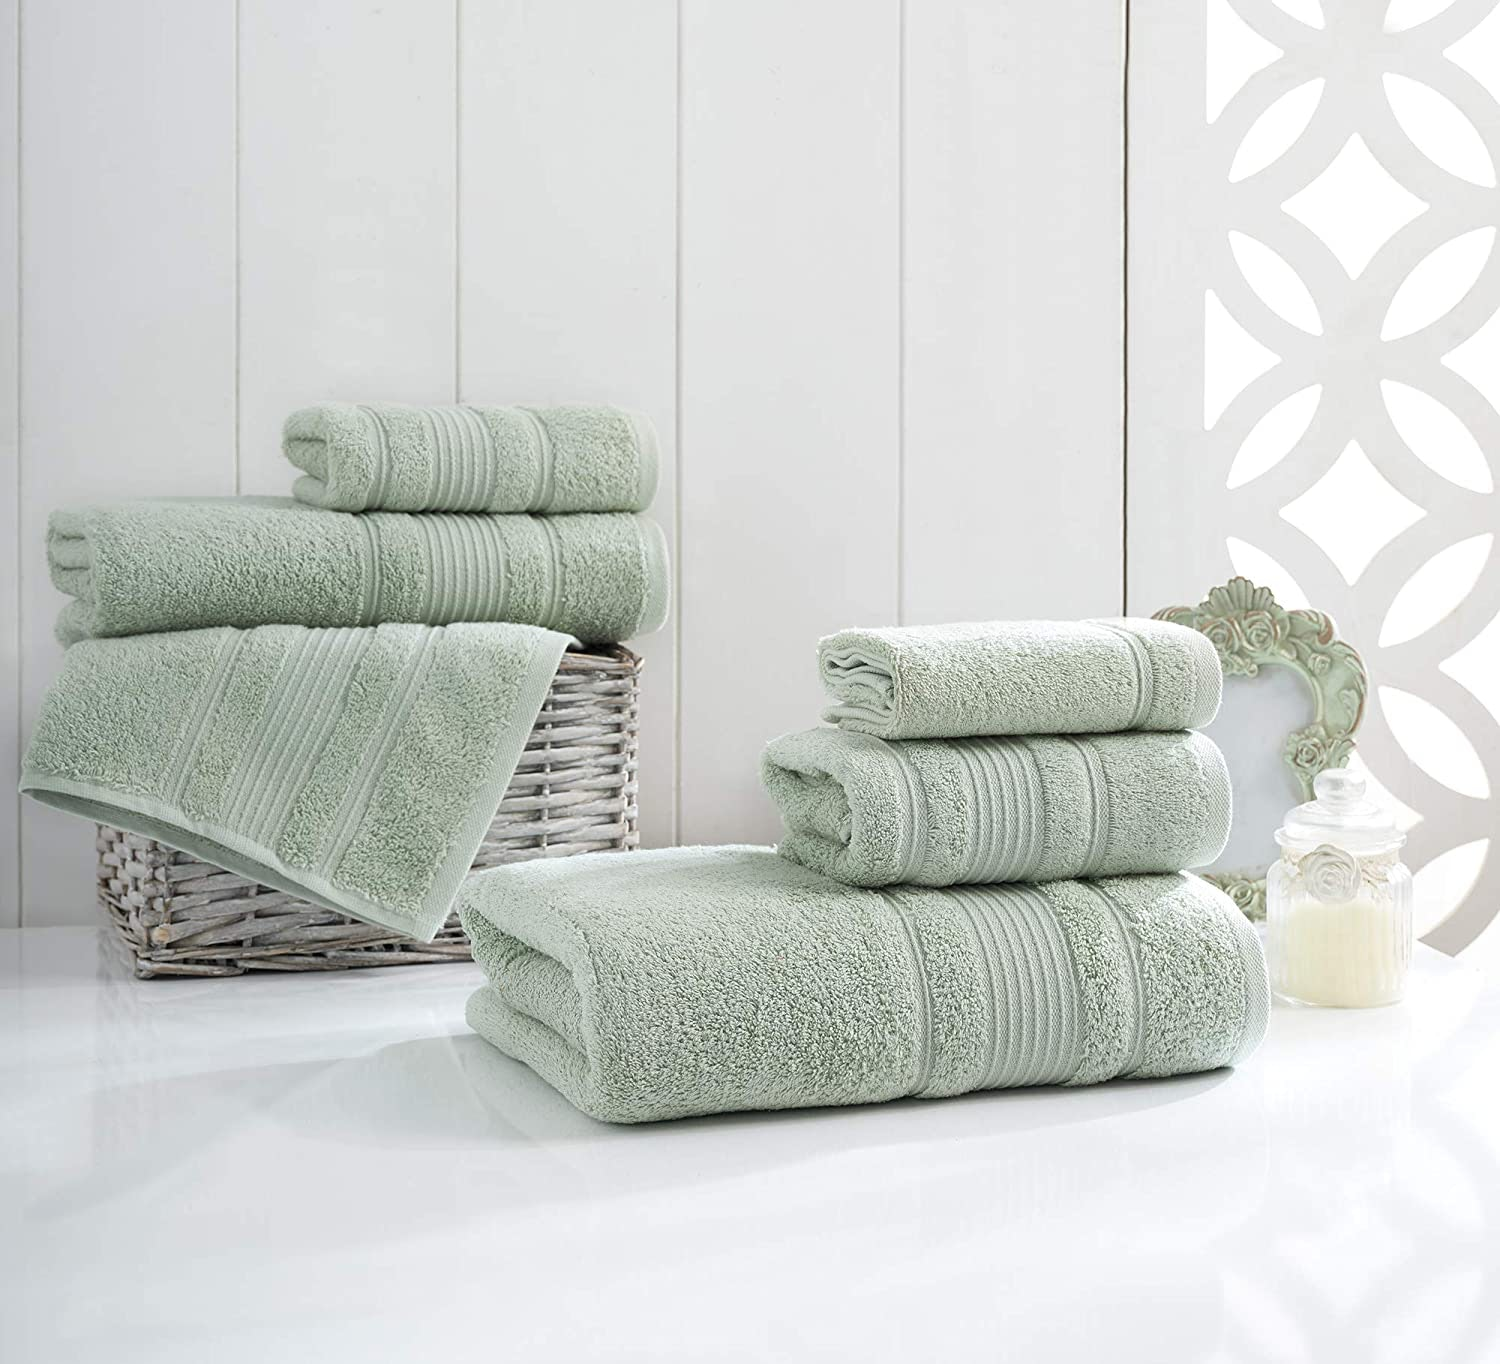 The 8 Best Quick-Dry Bath Towels In 2021